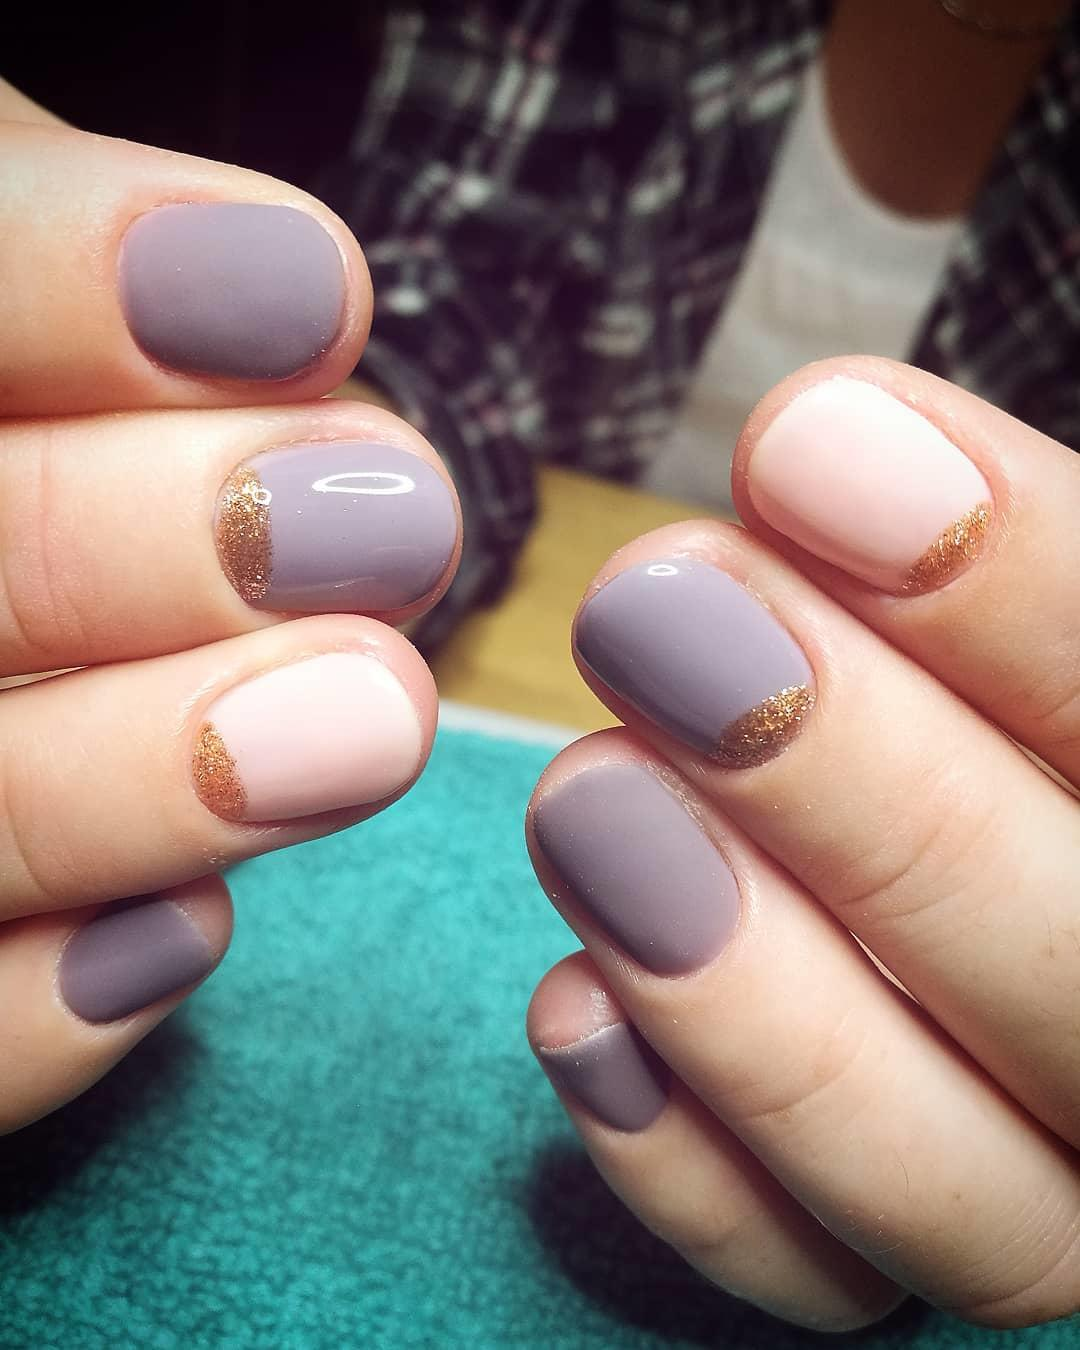 simple and easy nail art ideas 2019 15 - Simple And Easy Nail Art Ideas 2019